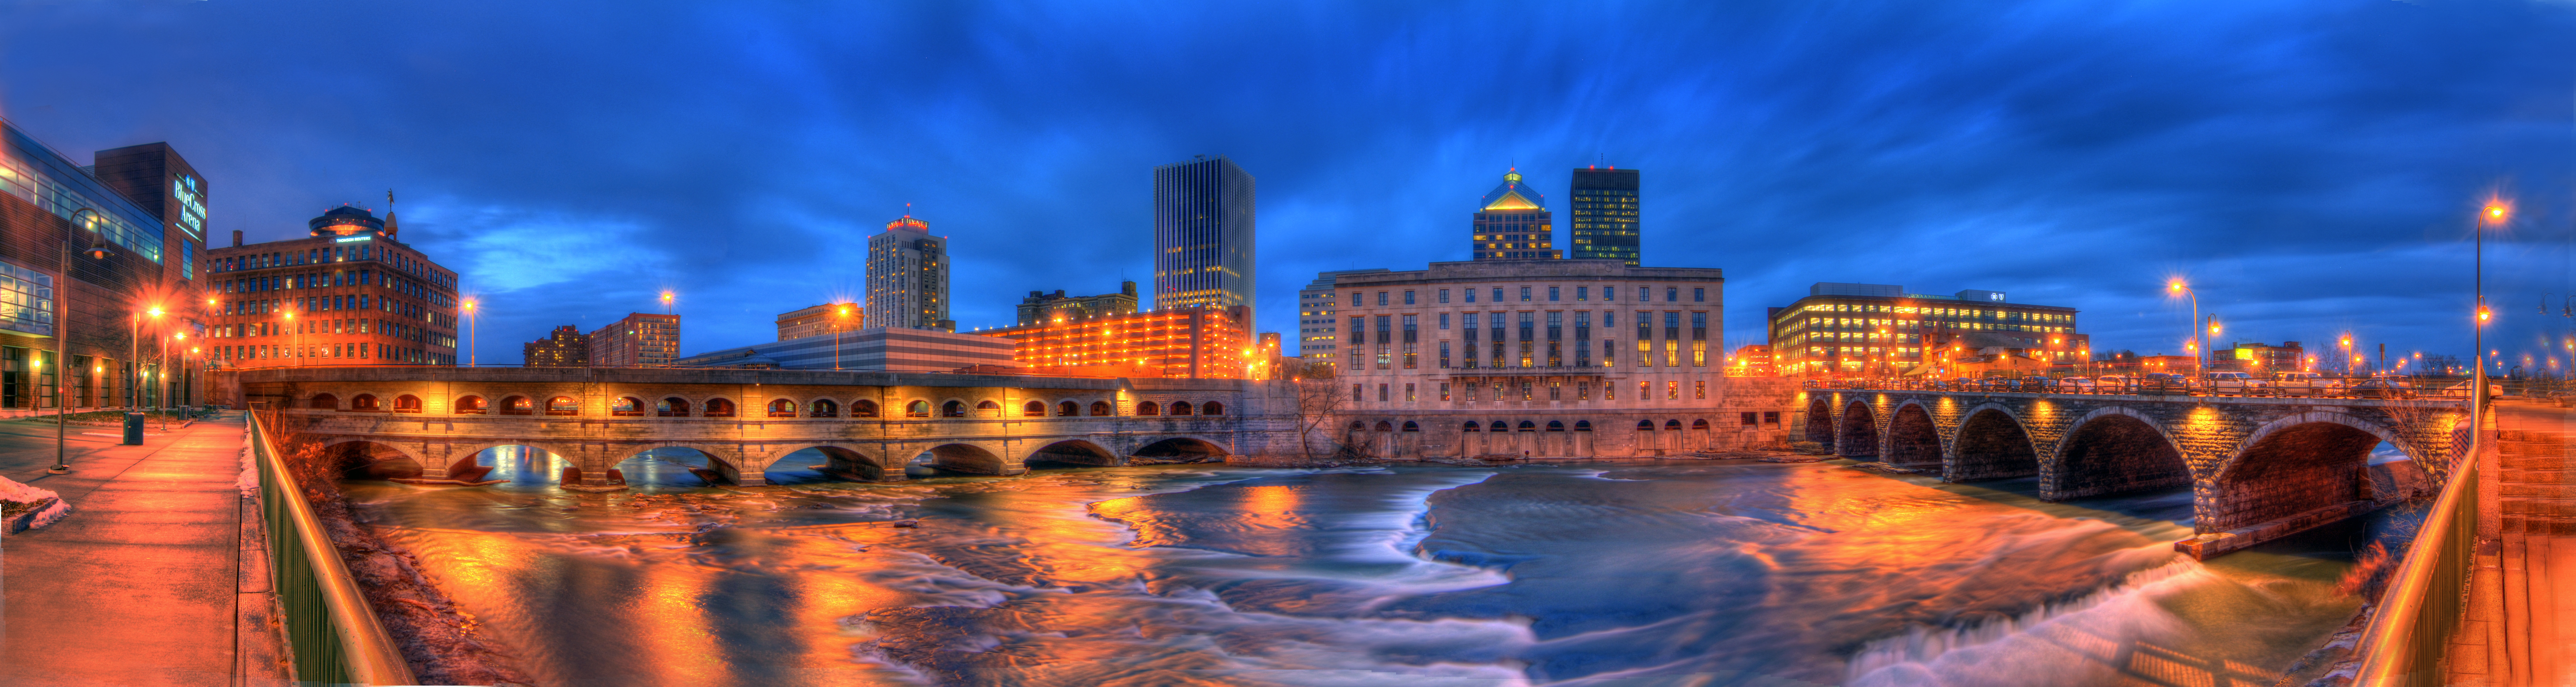 Top things to do in rochester ny